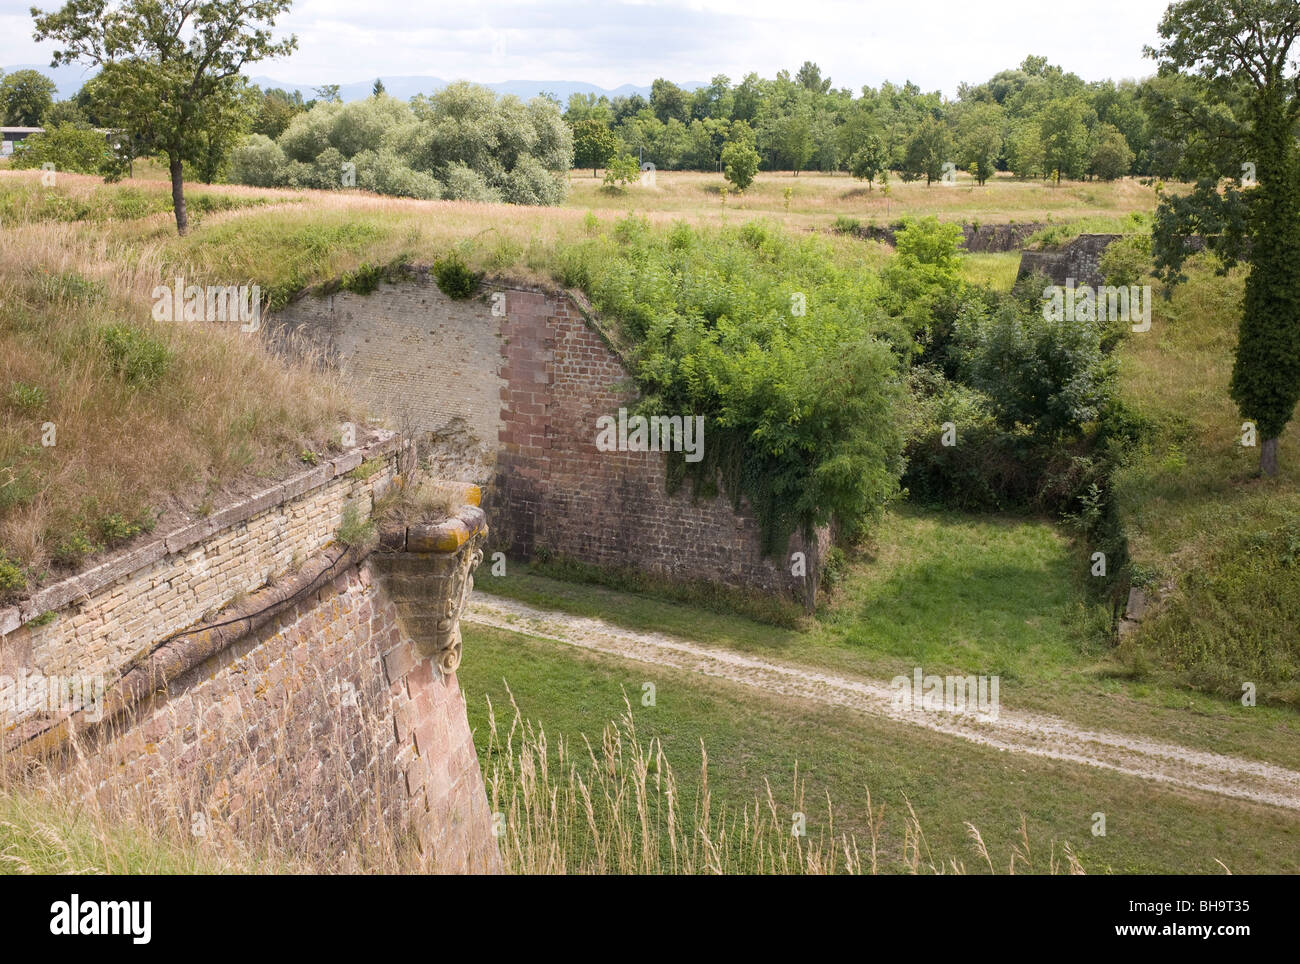 Fortifications at Neuf-Brisach, Haut-Rhin Alsace, France, a military border town built by Vauban In the Rhine Valley - Stock Image